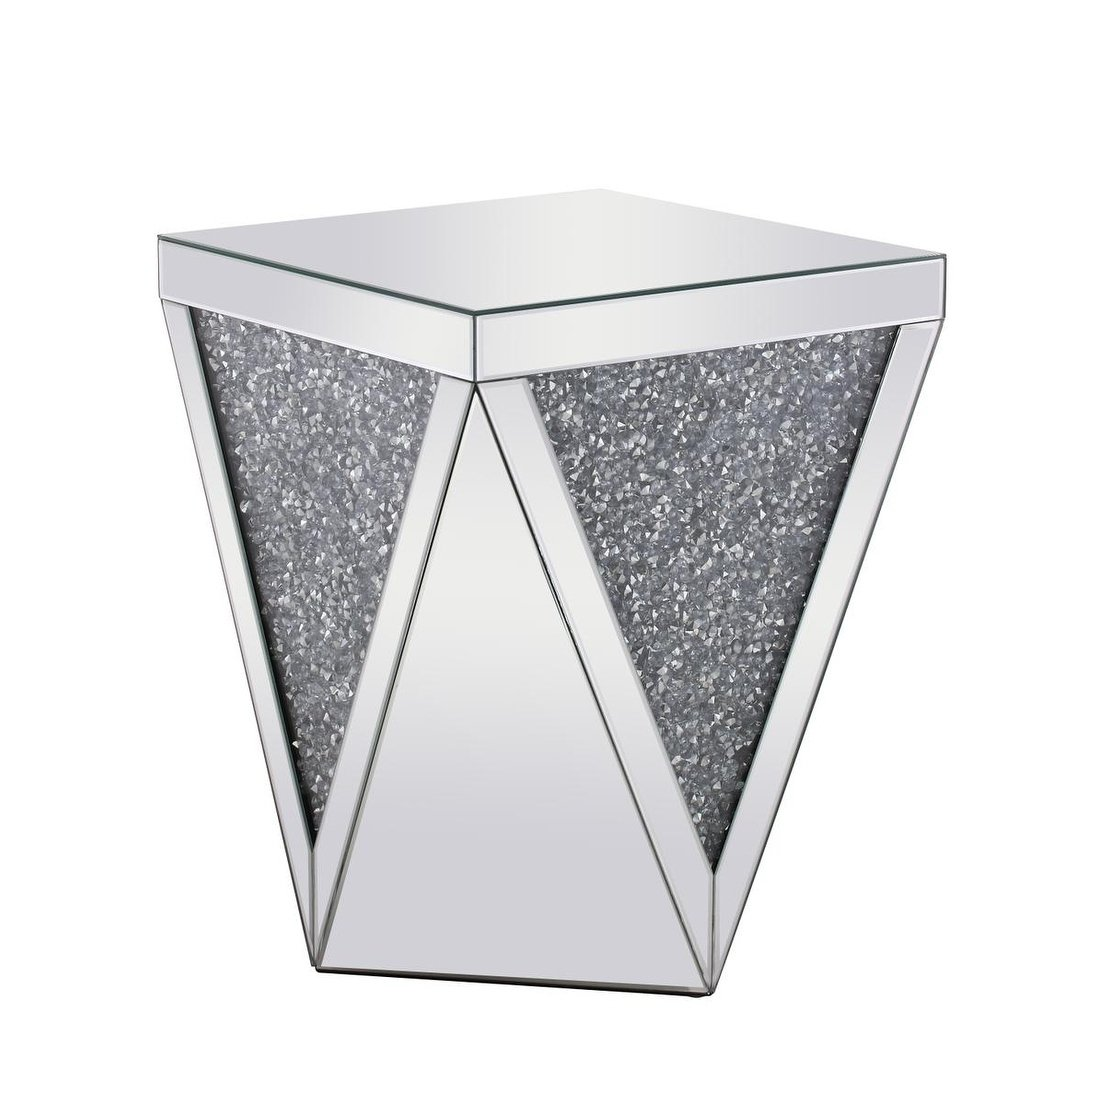 mirrored glass and crystal inch end table free shipping diamond accent today modern couch home furniture design small kitchen lamp cream wood coffee linen rentals pottery barn